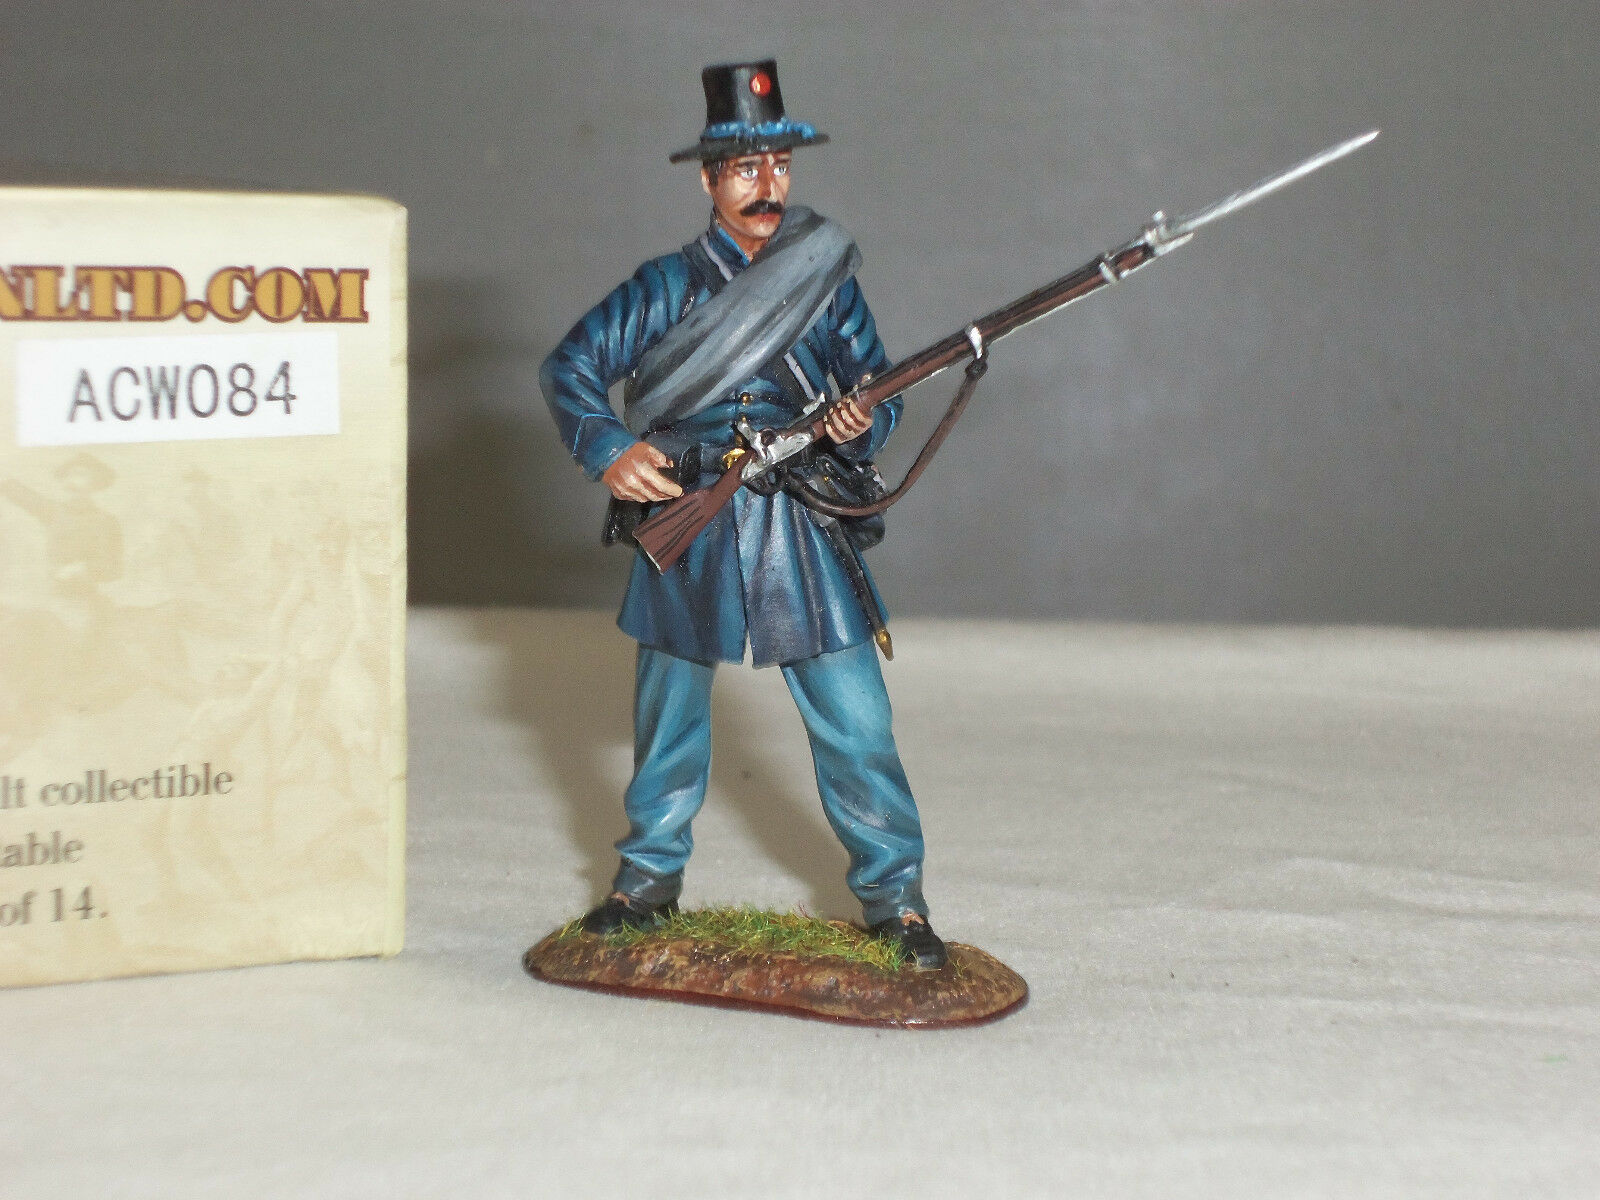 FIRST LEGION ACW084 IRON BRIGADE 2ND WISCONSIN VOLUNTEERS STANDING LOADING